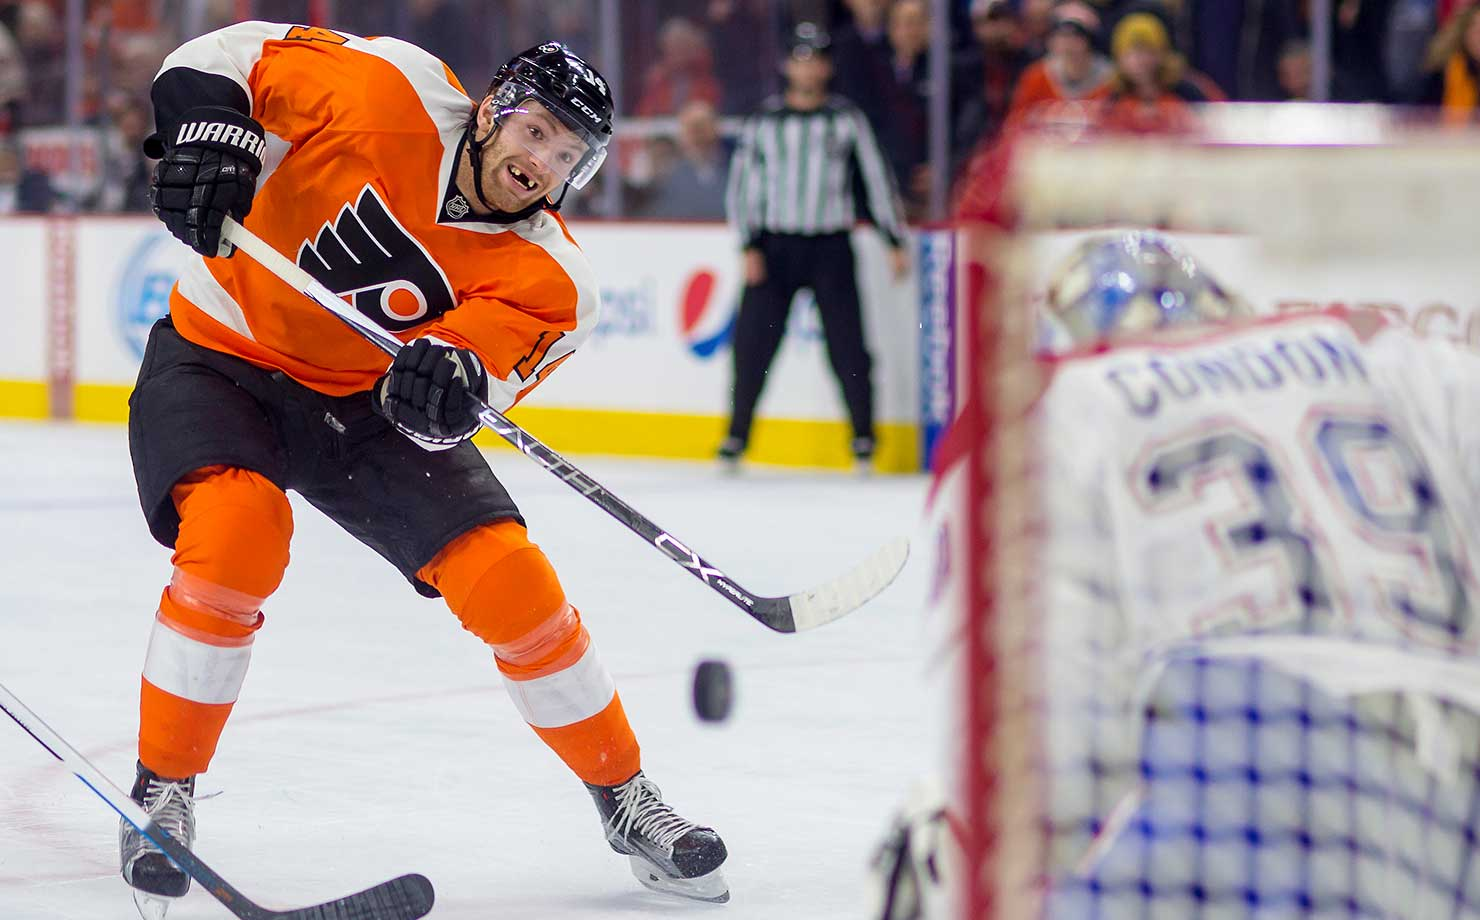 Here are some of the images that caught our eye on the sports night of Feb. 2, starting with Philadelphia Flyers center Sean Couturier fireing a shot at the Montreal Canadiens at the Wells Fargo Center in Philadelphia.